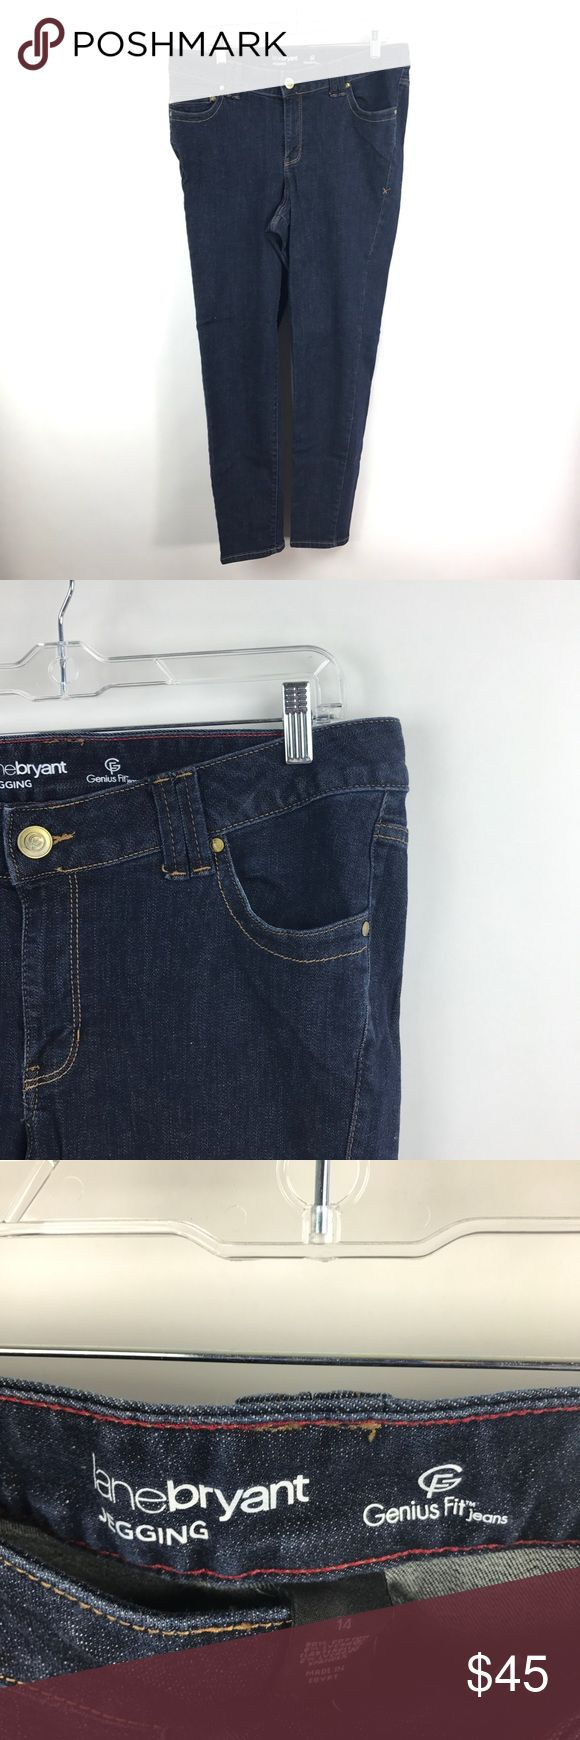 """Lane Bryant Jegging Dark Wash Jeans Sz 14 382/734 Lane Bryant Jegging Jeans Dark Wash Denim Women's Size 14 Skinny Stretch EUC   Measurements: Waist: 18"""" Flat Across Rise: 11"""" Long Inseam: 28"""" Long  In excellent preowned condition with no known flaws and light overall wear. Lane Bryant Jeans Skinny"""